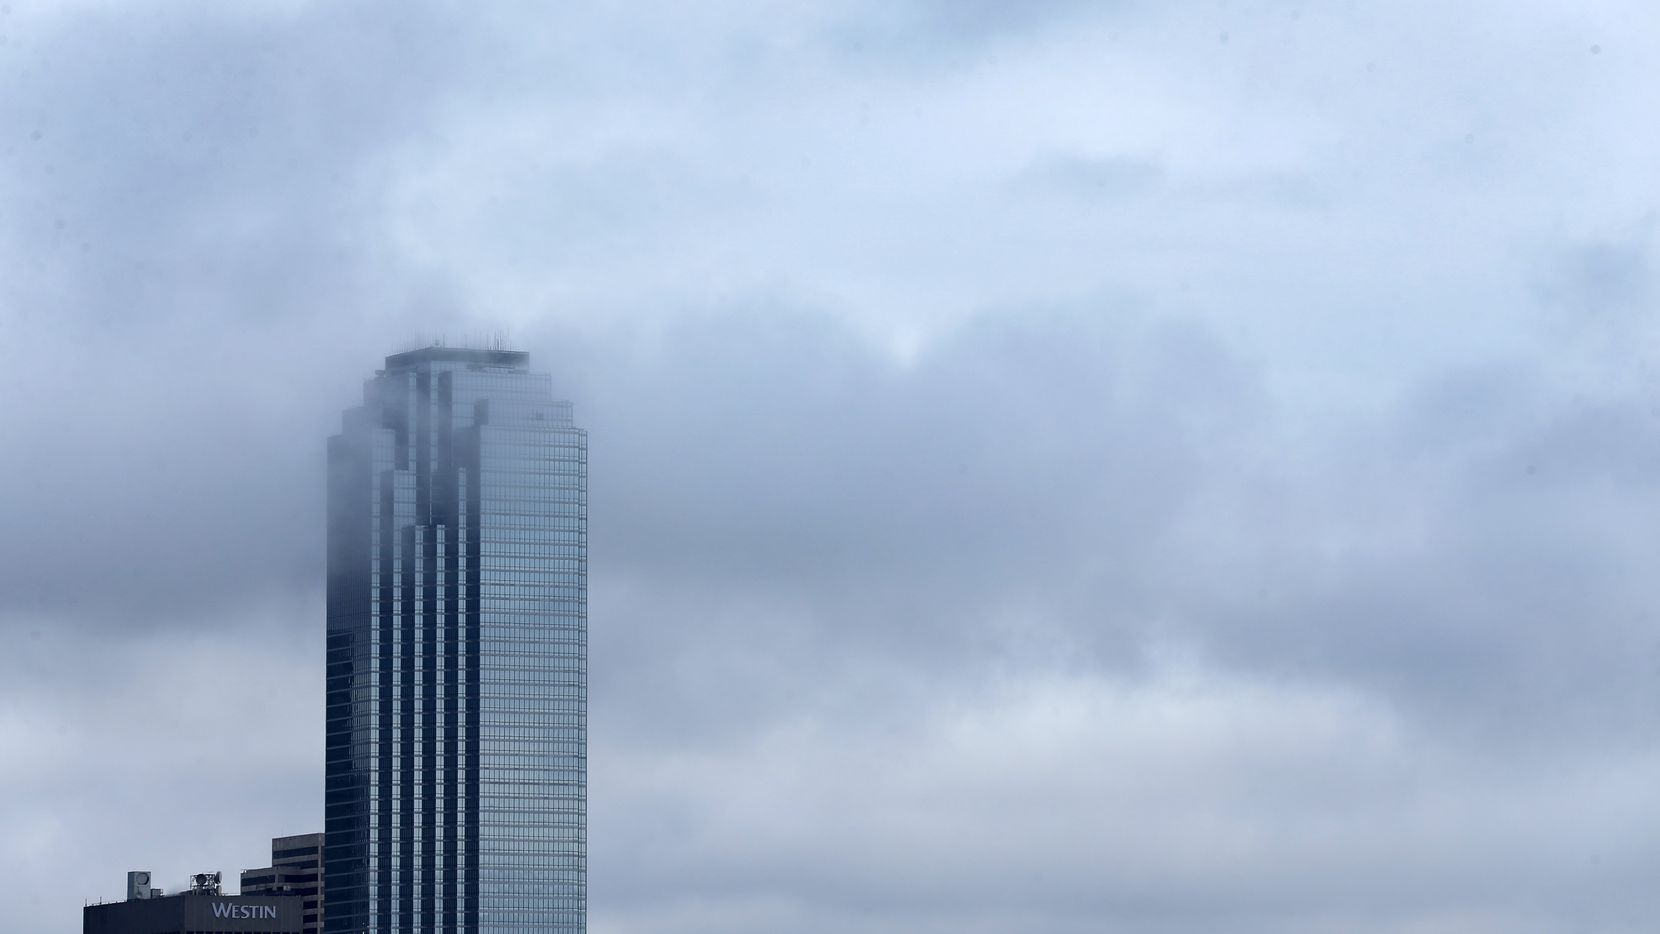 Lingering clouds drifted around the Bank of America building in downtown Dallas as a cold front ushered out the rain on Feb. 24, 2018.